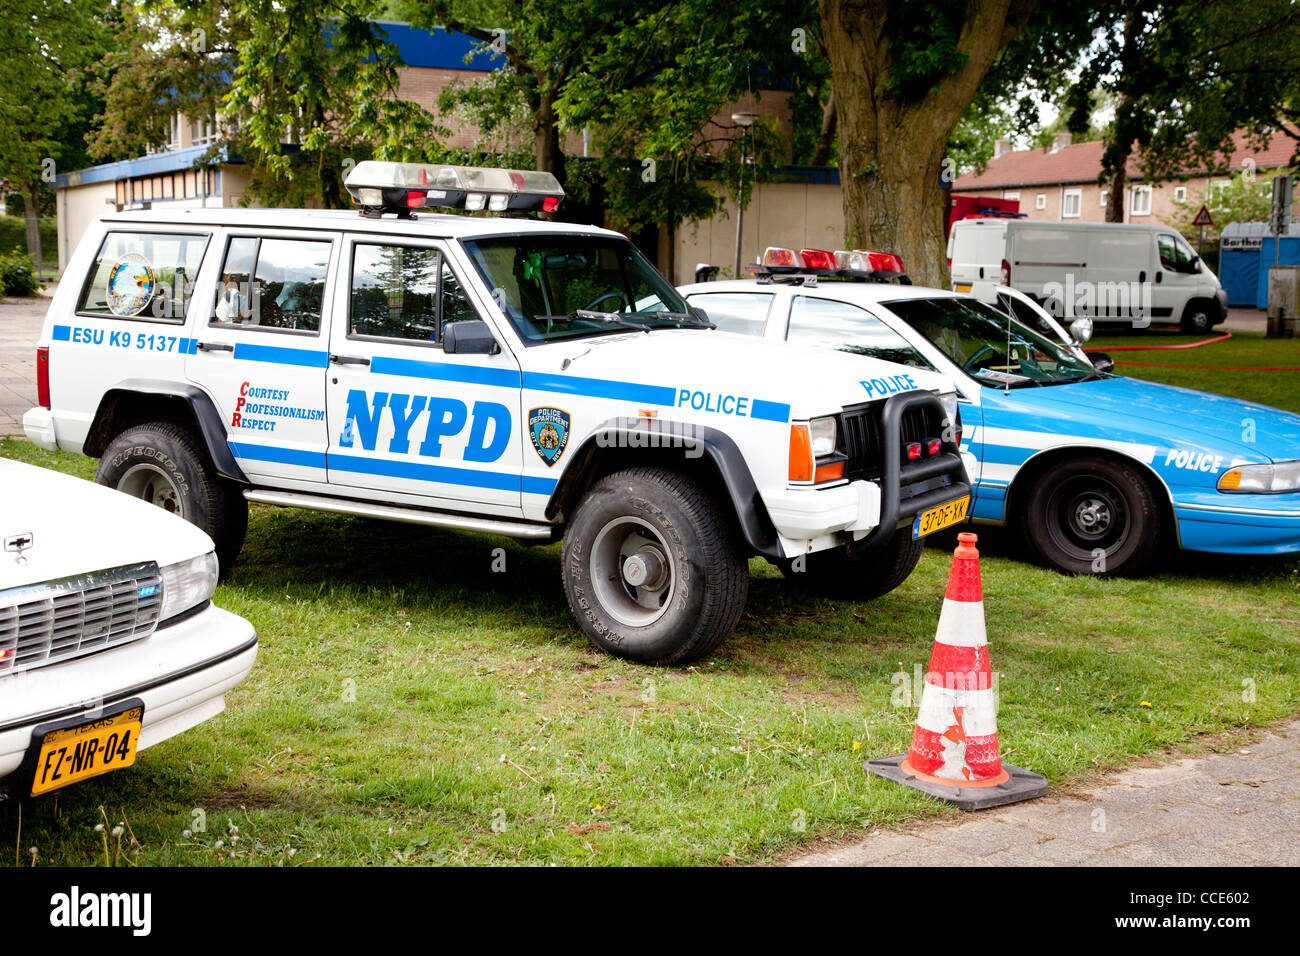 Old Cop Cars >> Old Police Car In Grass Stock Photo 42108642 Alamy